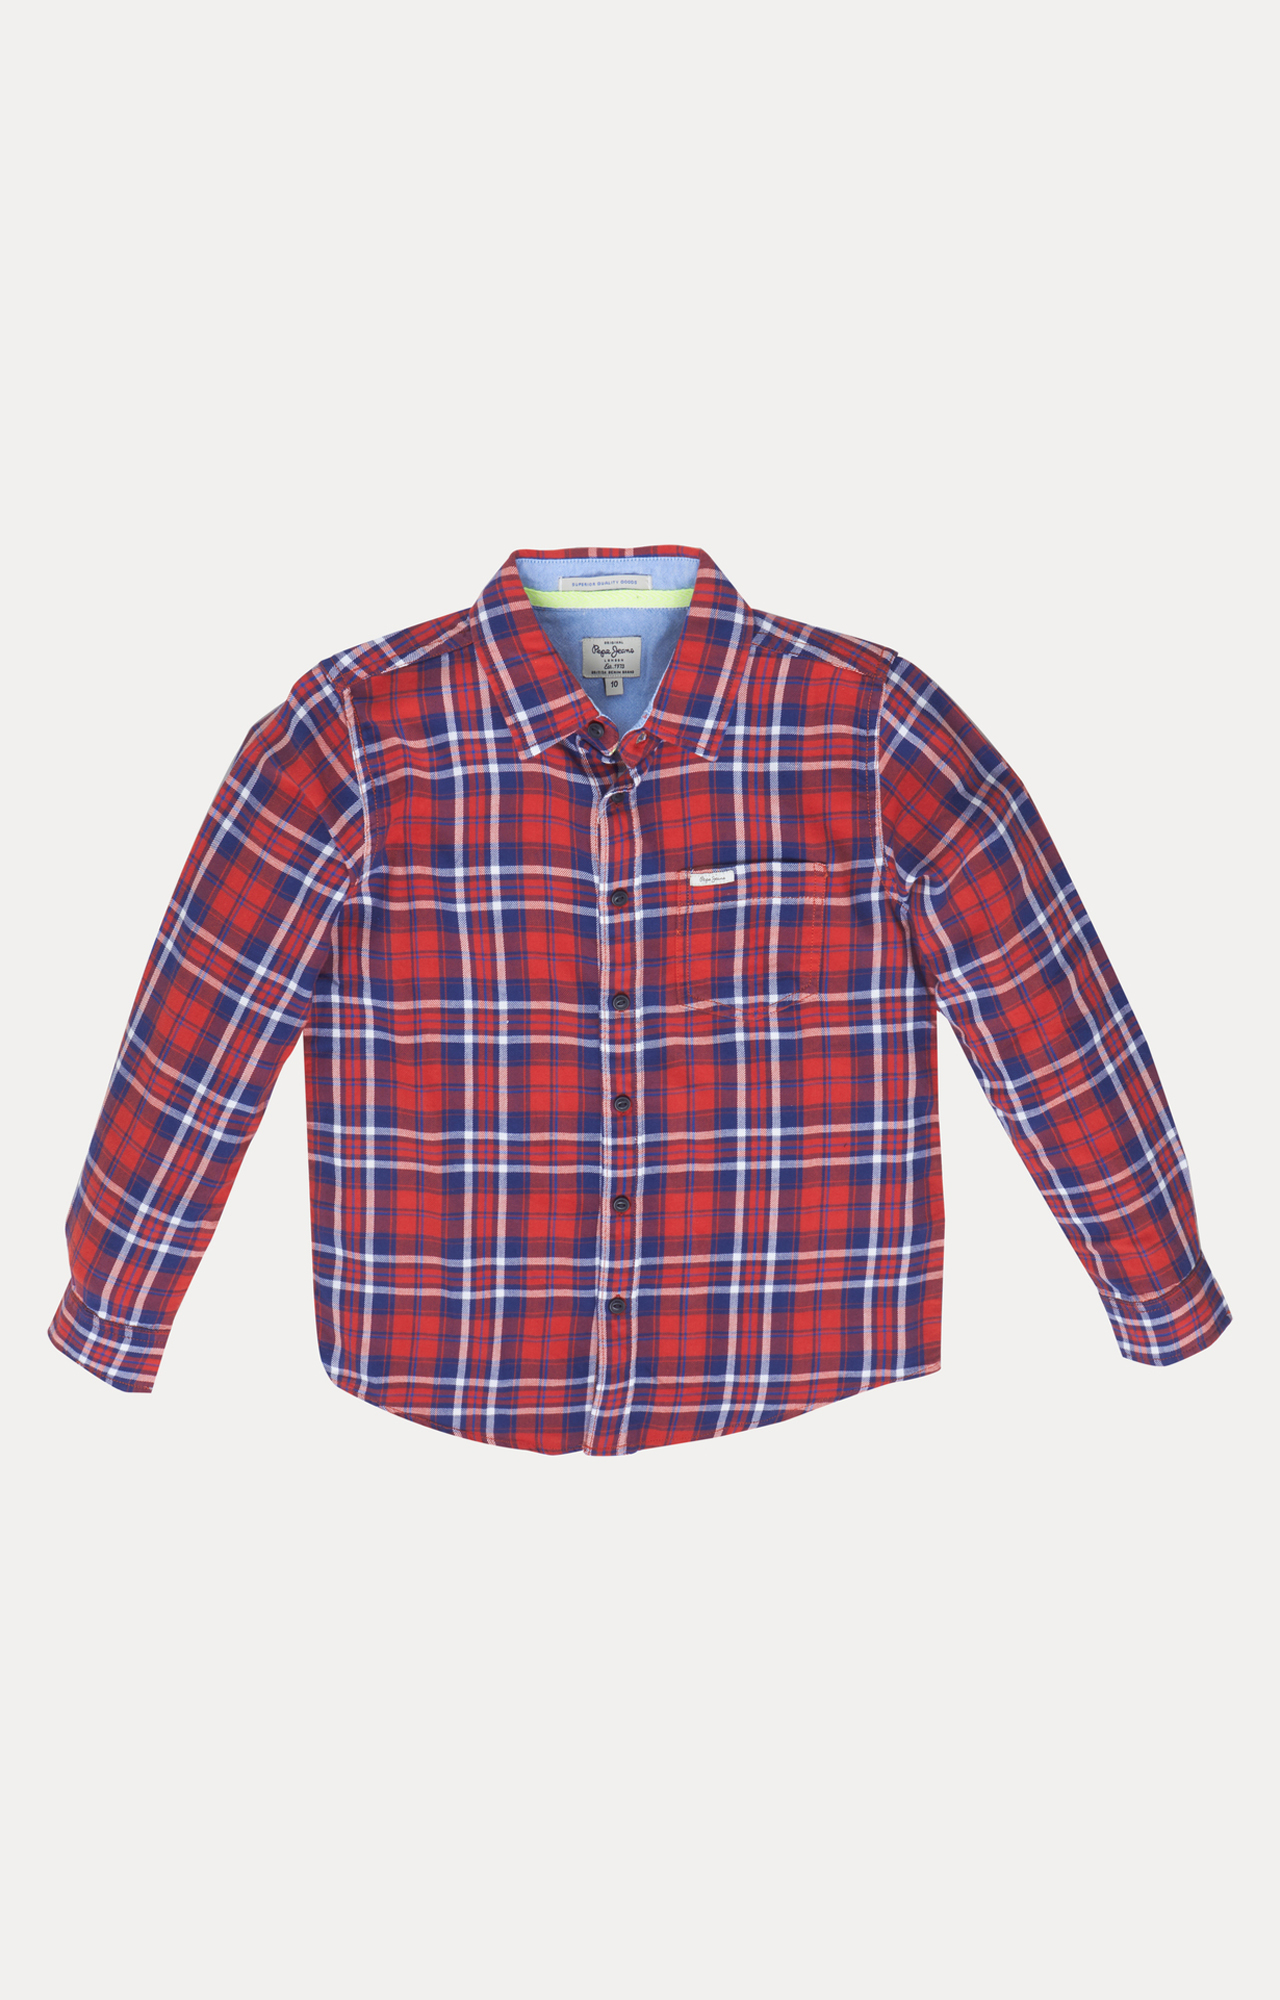 Pepe Jeans | Red and Blue Checked Shirt